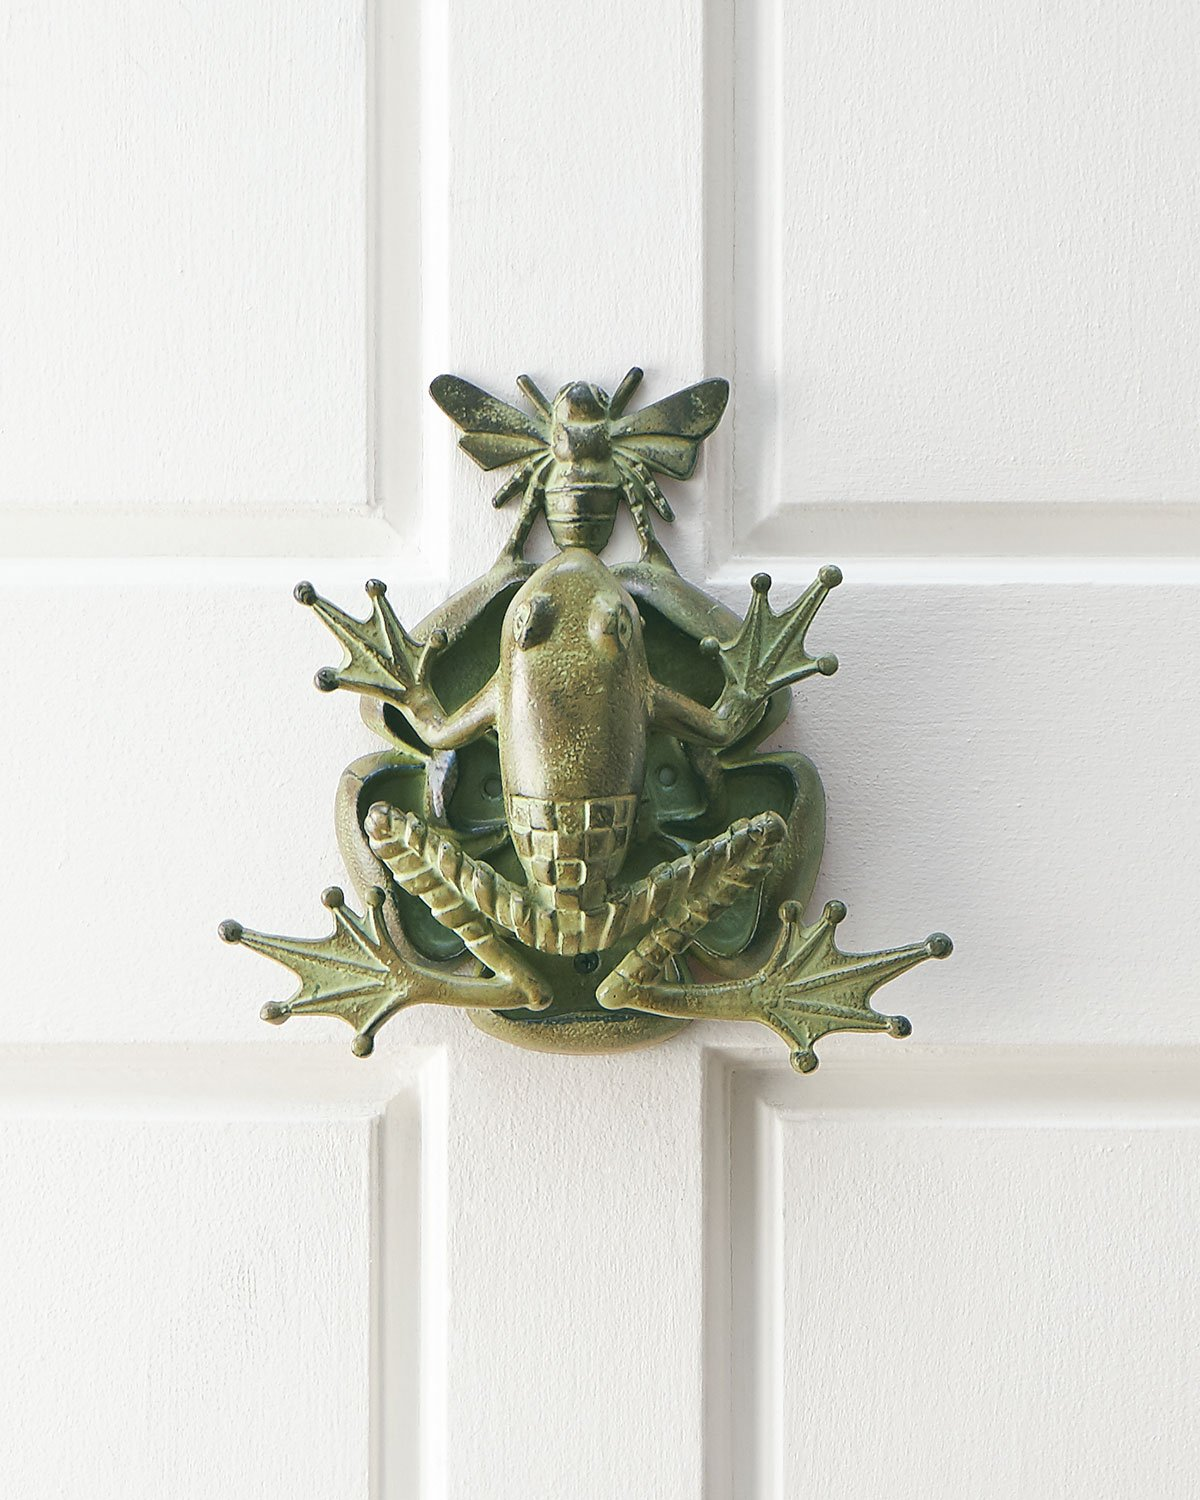 MacKenzie-Childs Door knocker 10''W x 3.5''D x 10''T. Imported. by MacKenzie-Childs (Image #1)